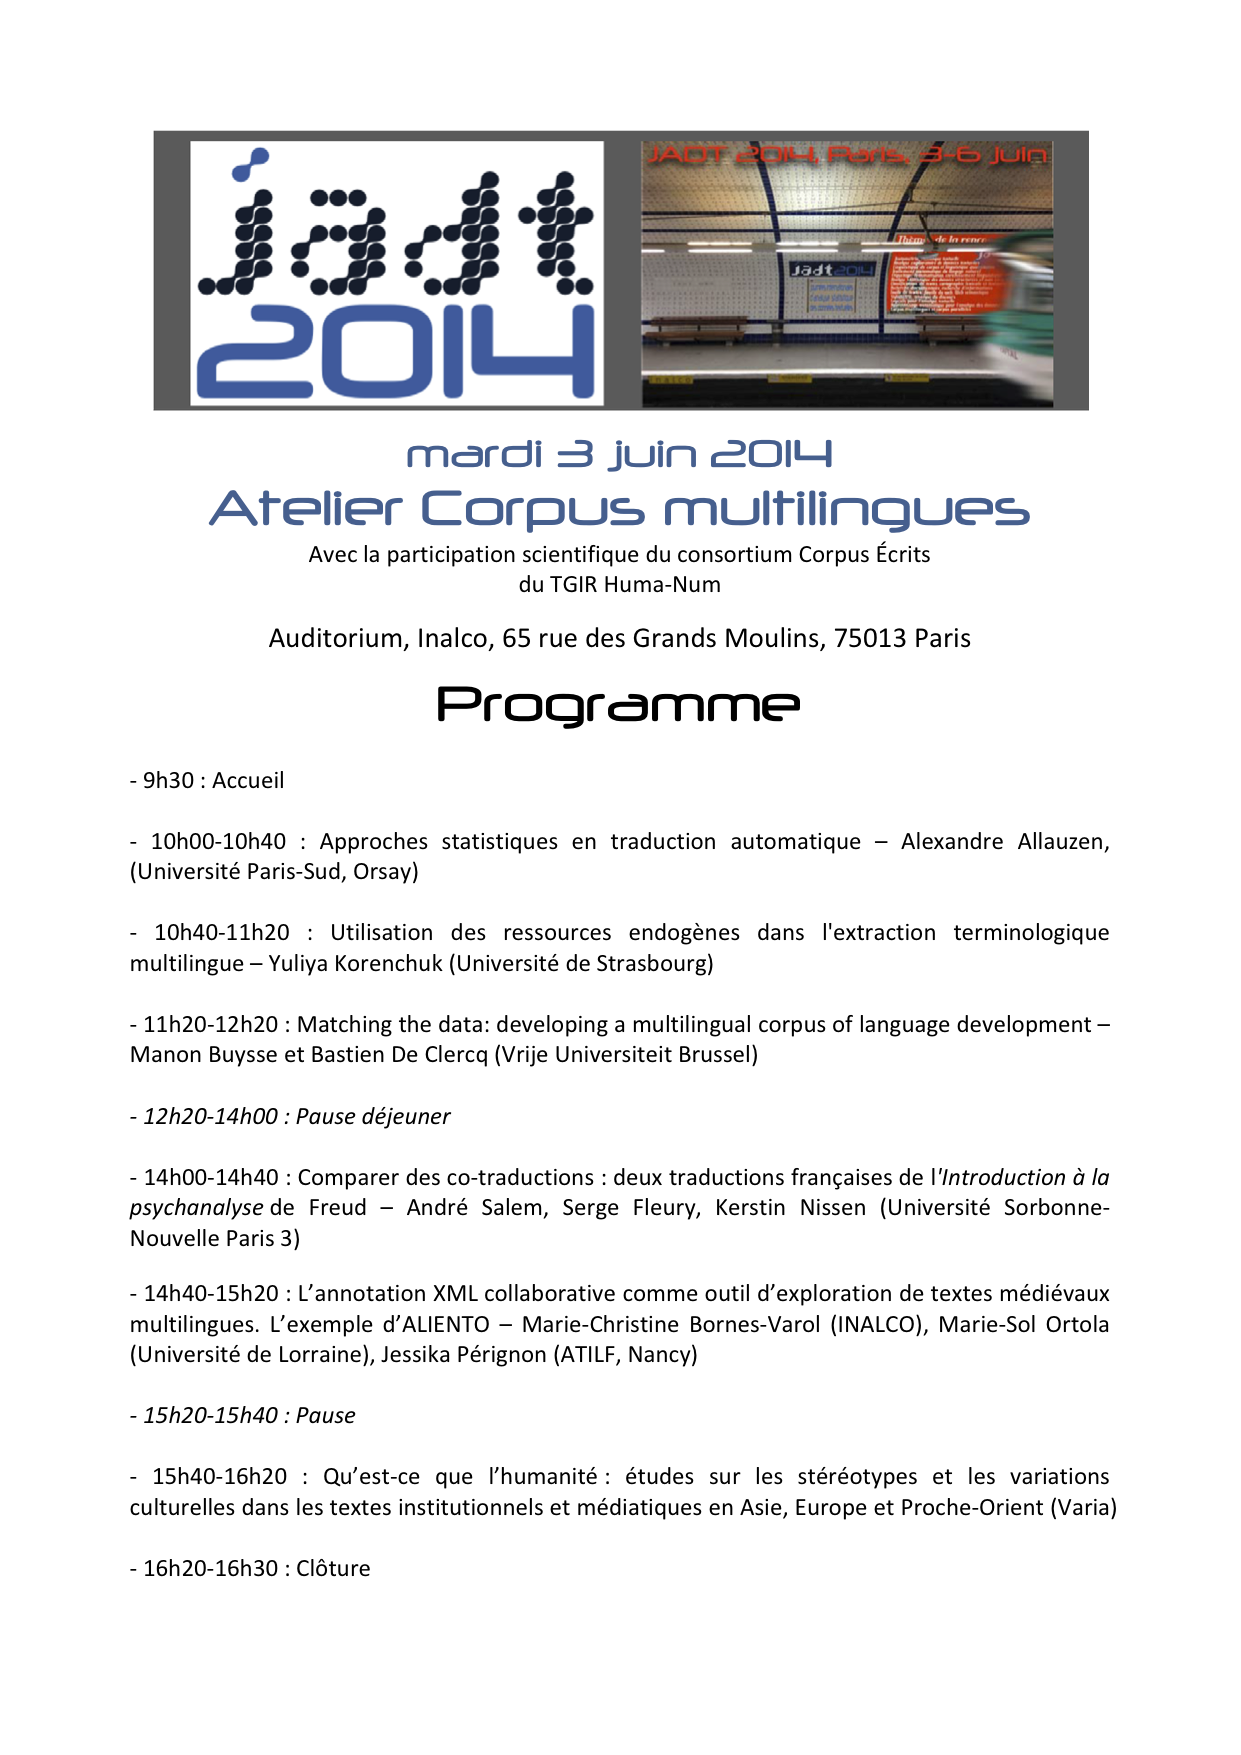 Atelier Corpus Multilingues